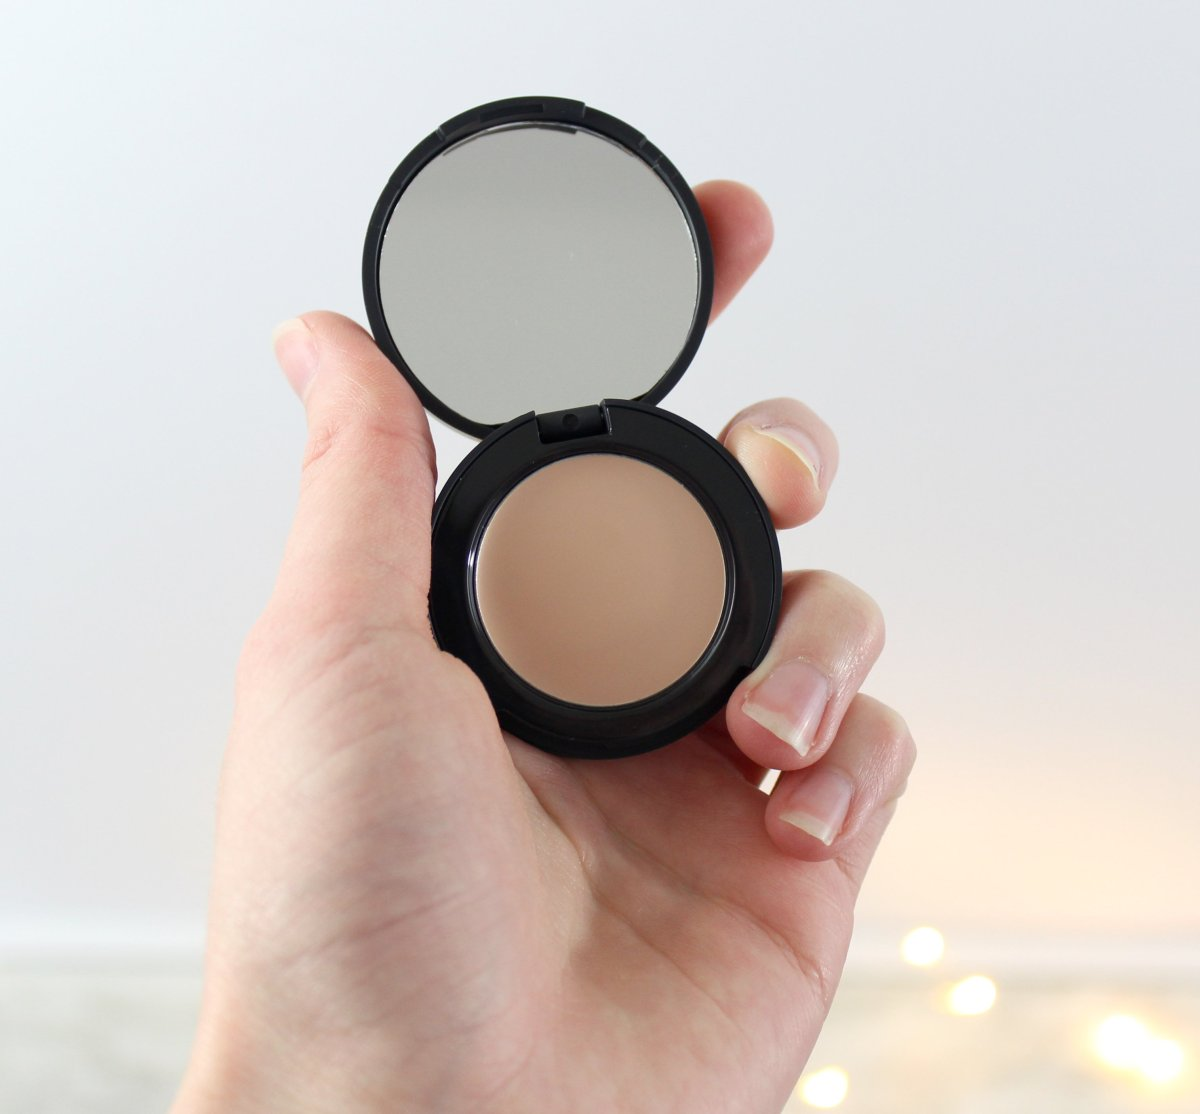 BareMinerals SPF 20 Correcting Concealer Review